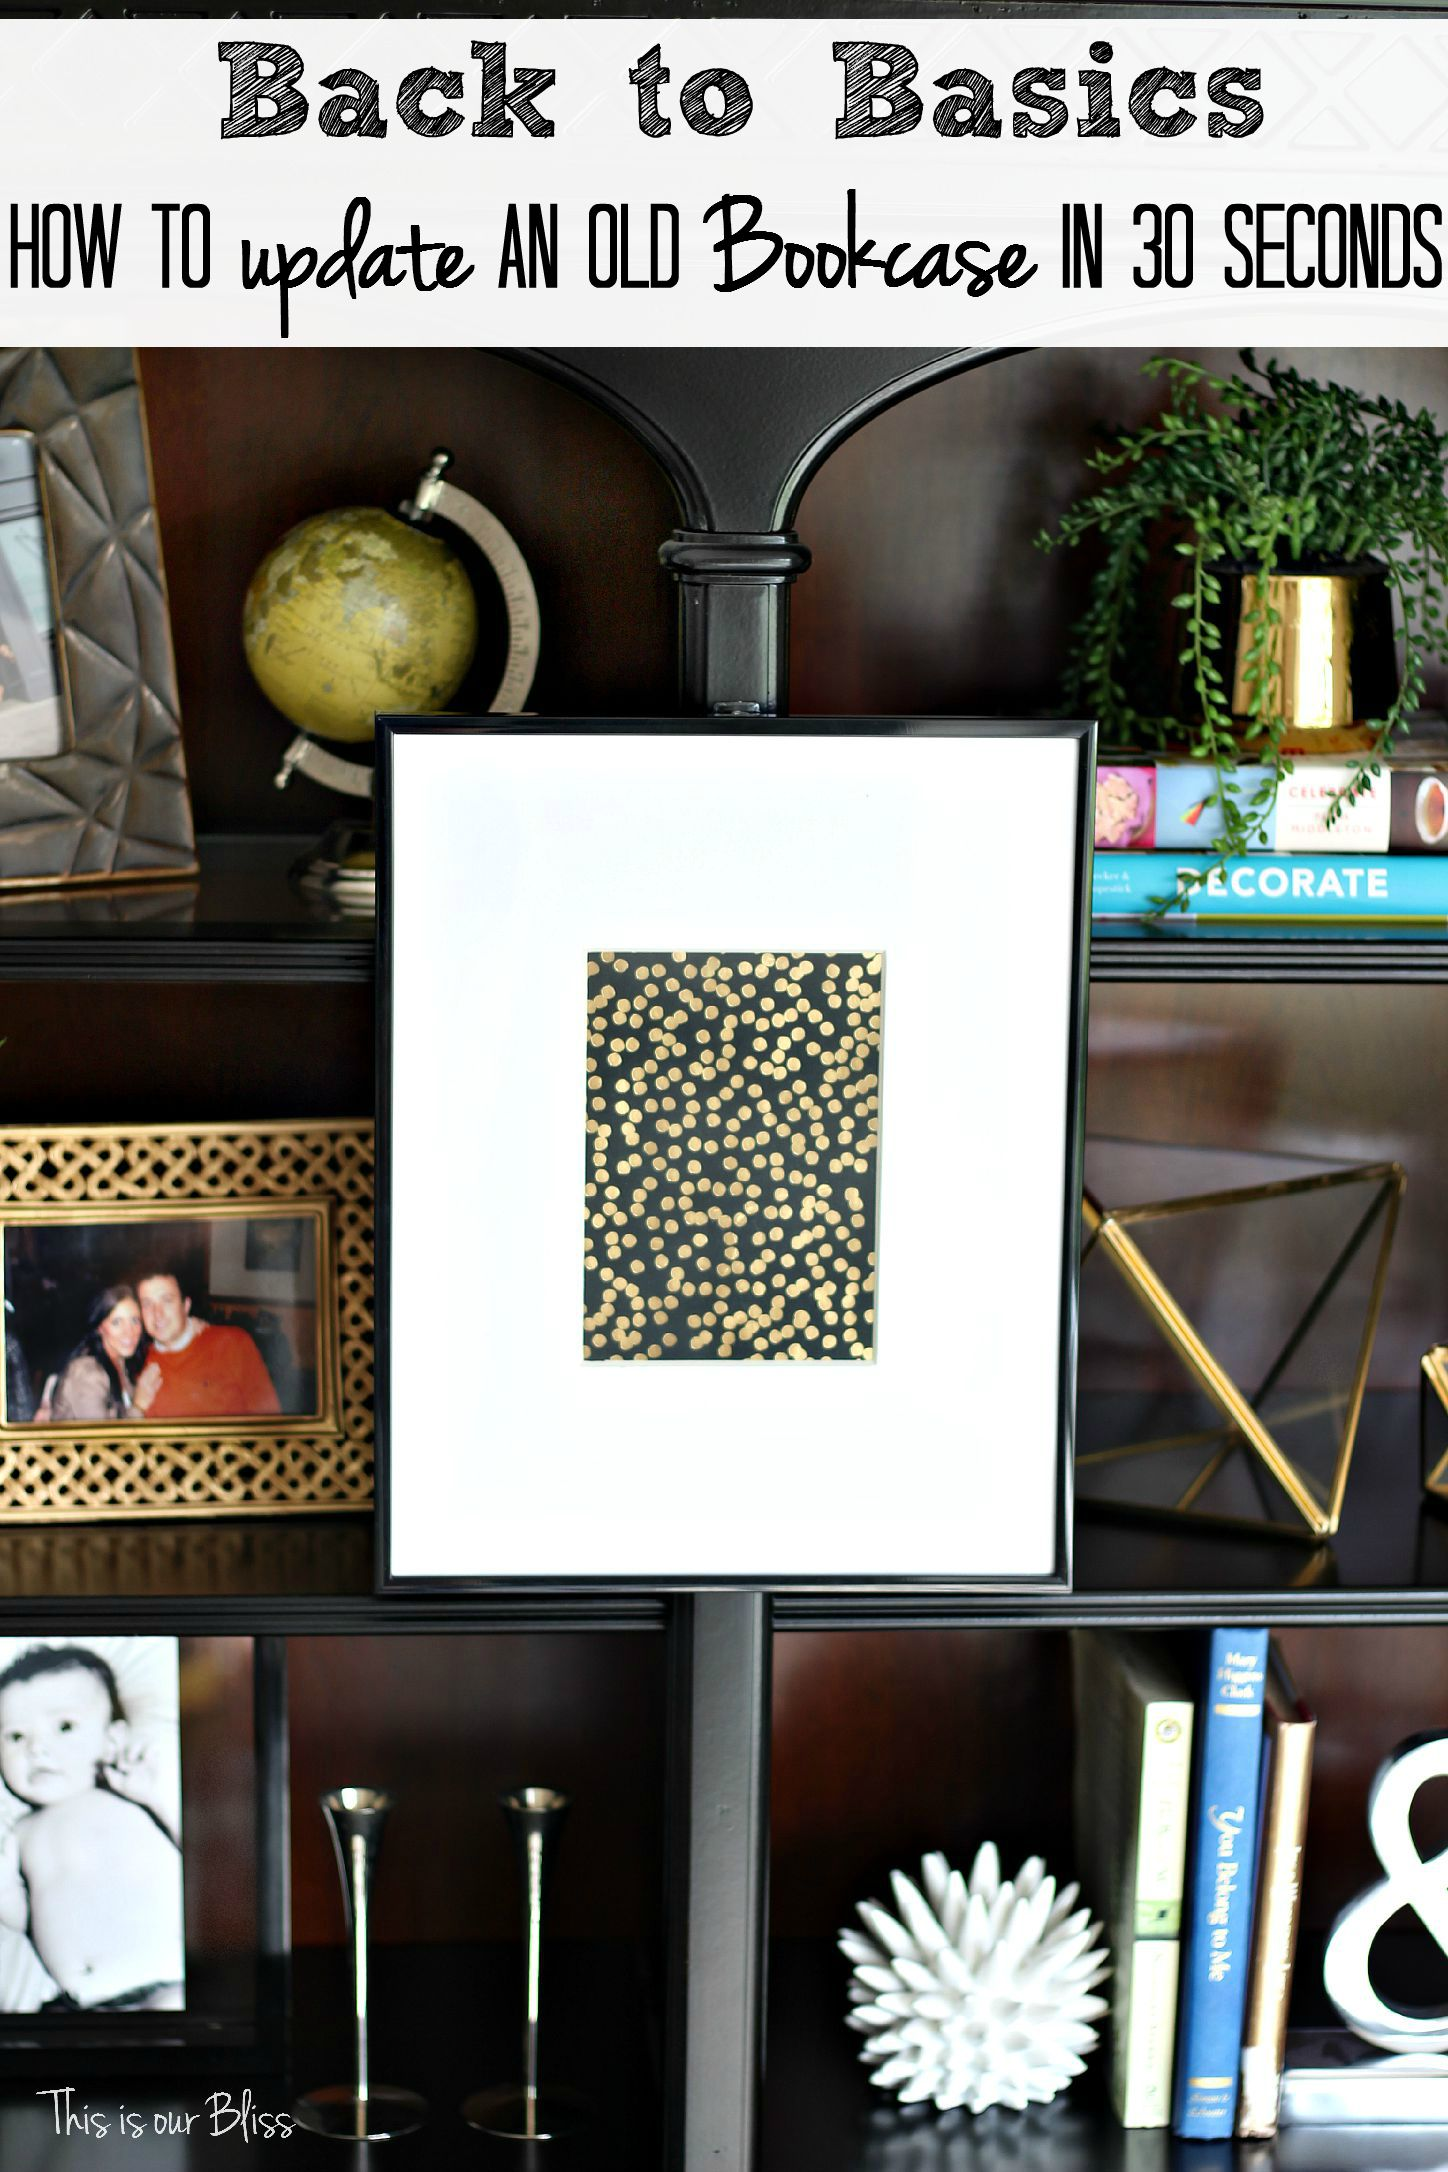 How To Update An Old Bookcase In 30 Seconds